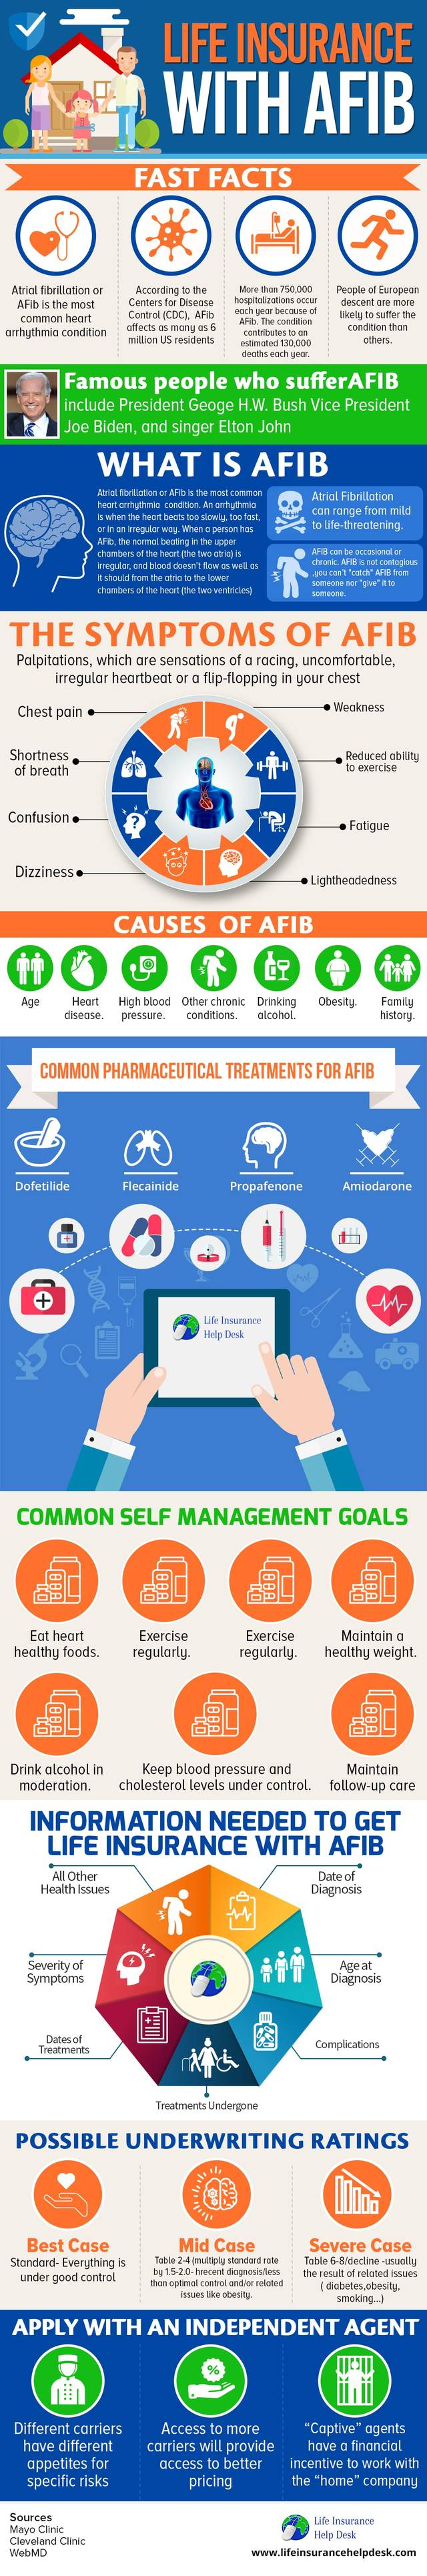 Life insurance with afib